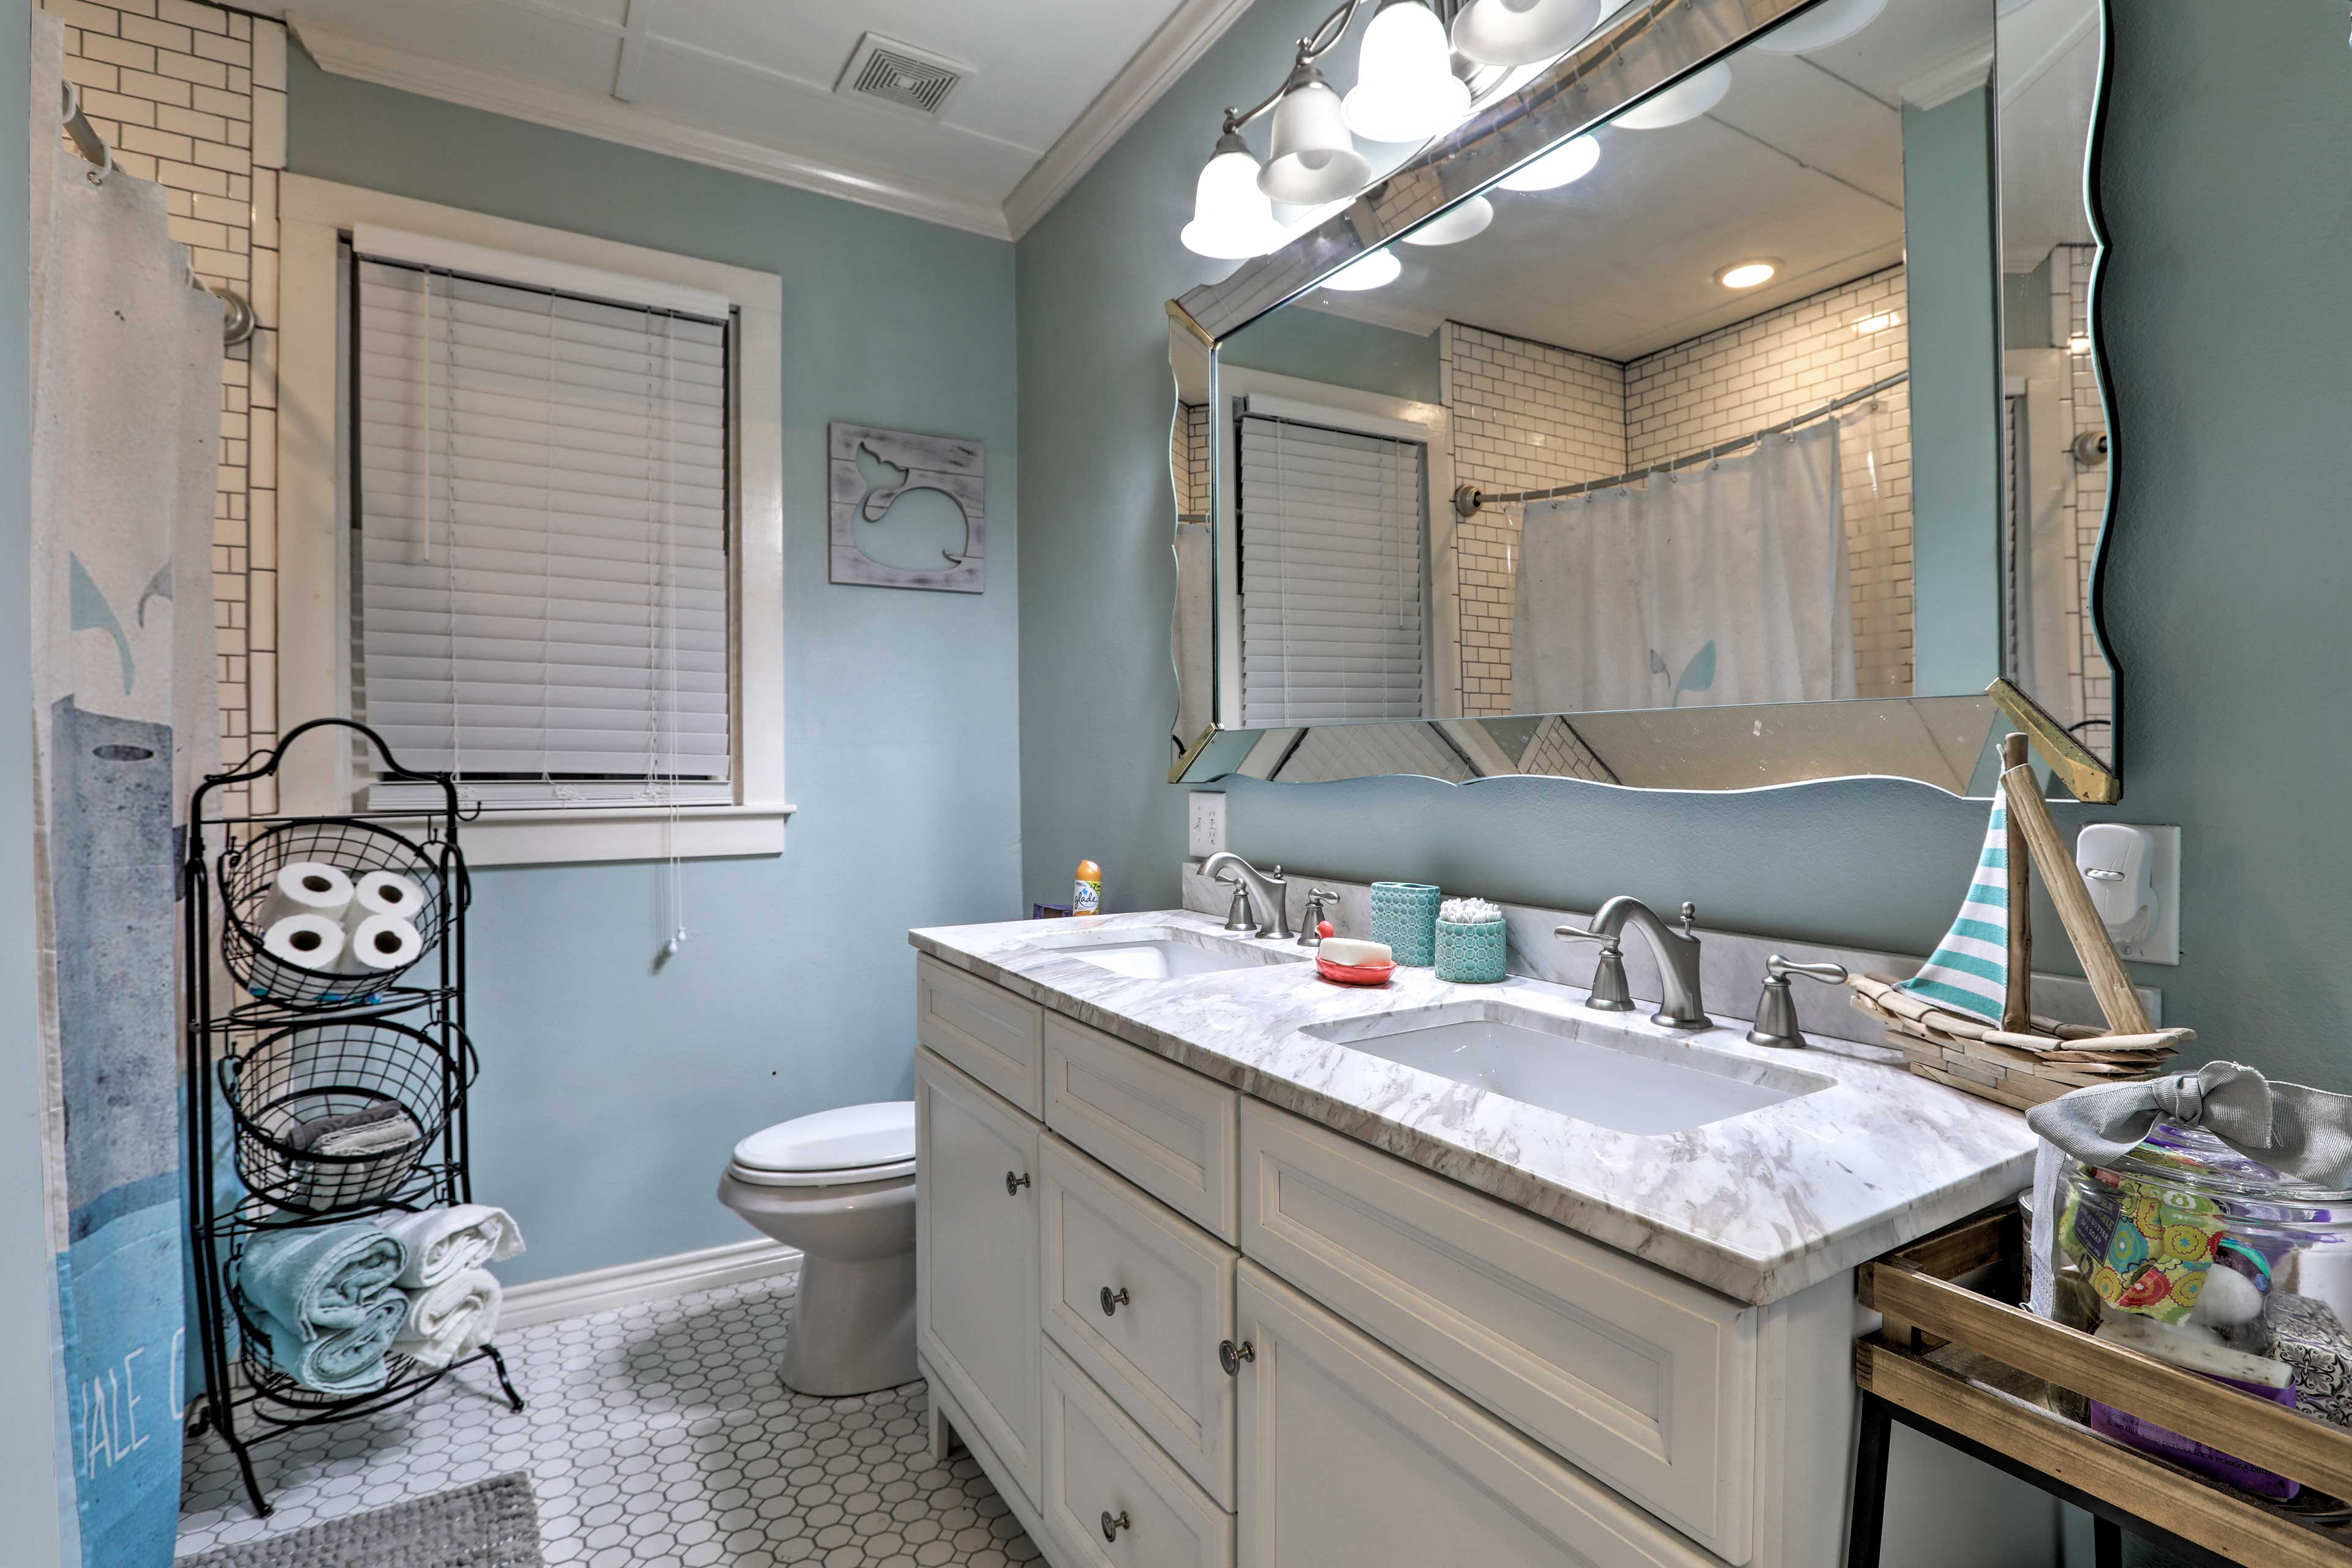 This full bathroom includes a double vanity.